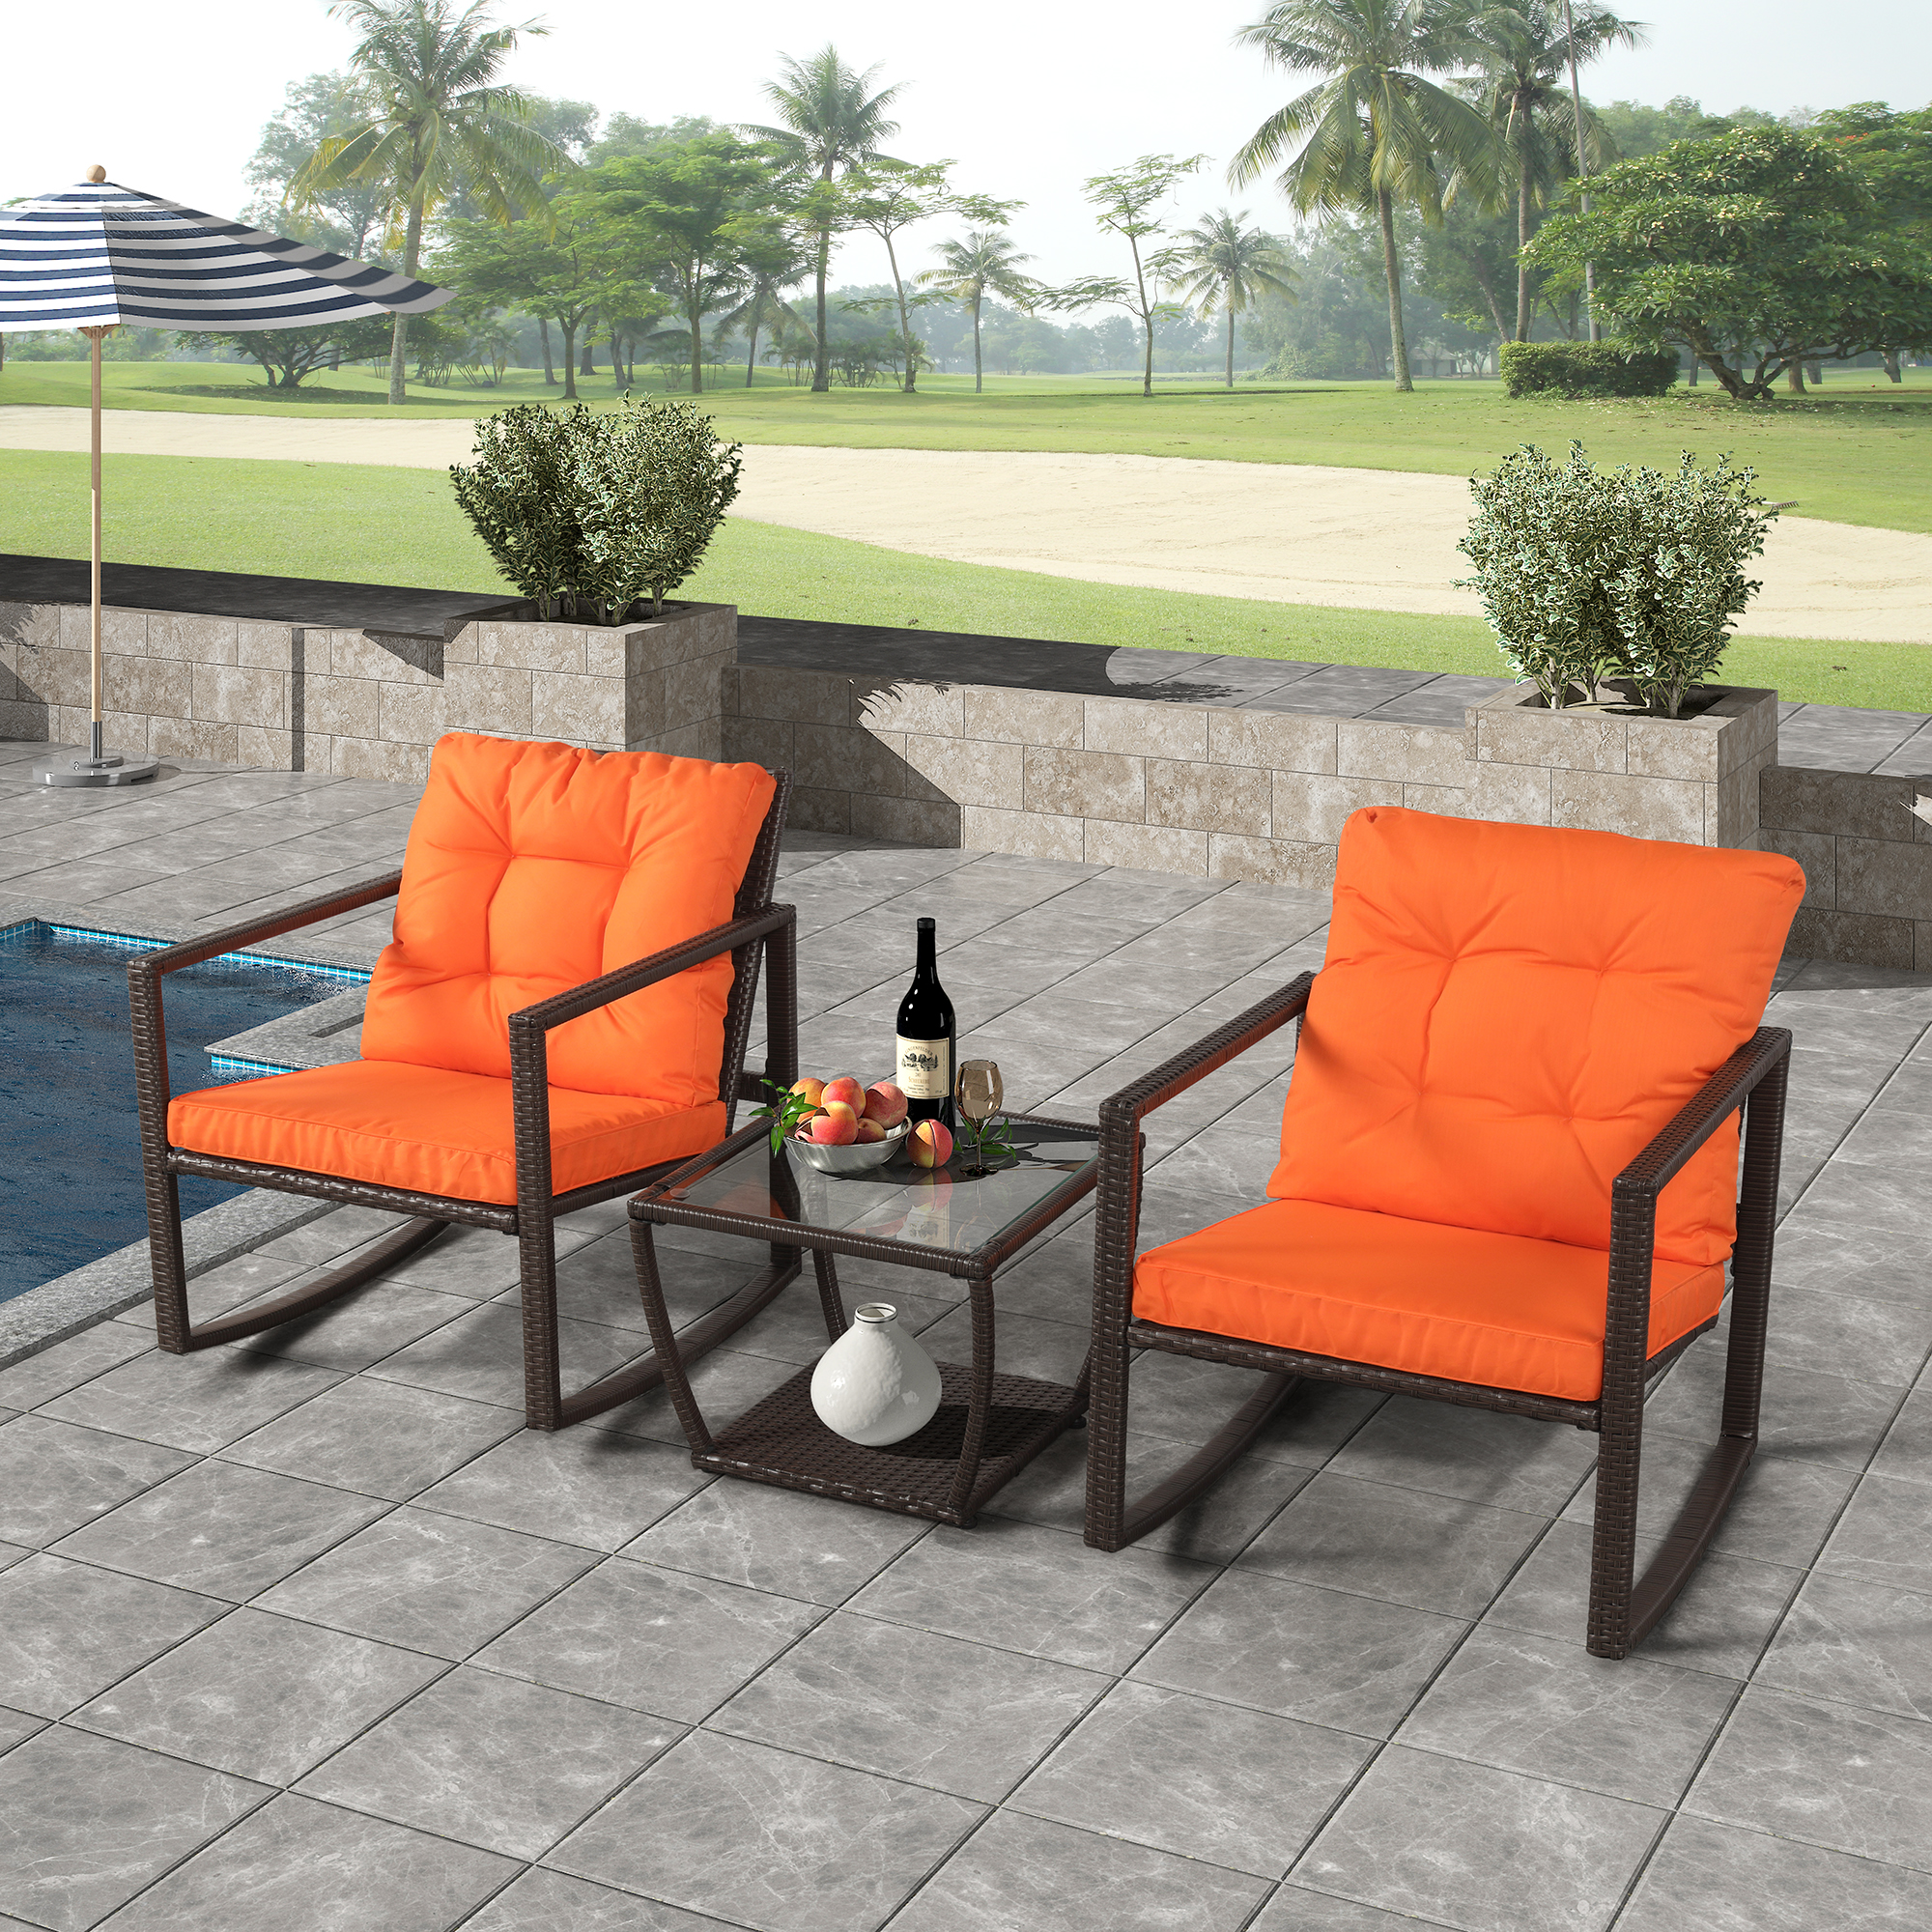 wicker patio rocking chair set 3 piece outdoor patio furniture bistro set with rocking chairs coffee table outdoor rocking chair sets for yard